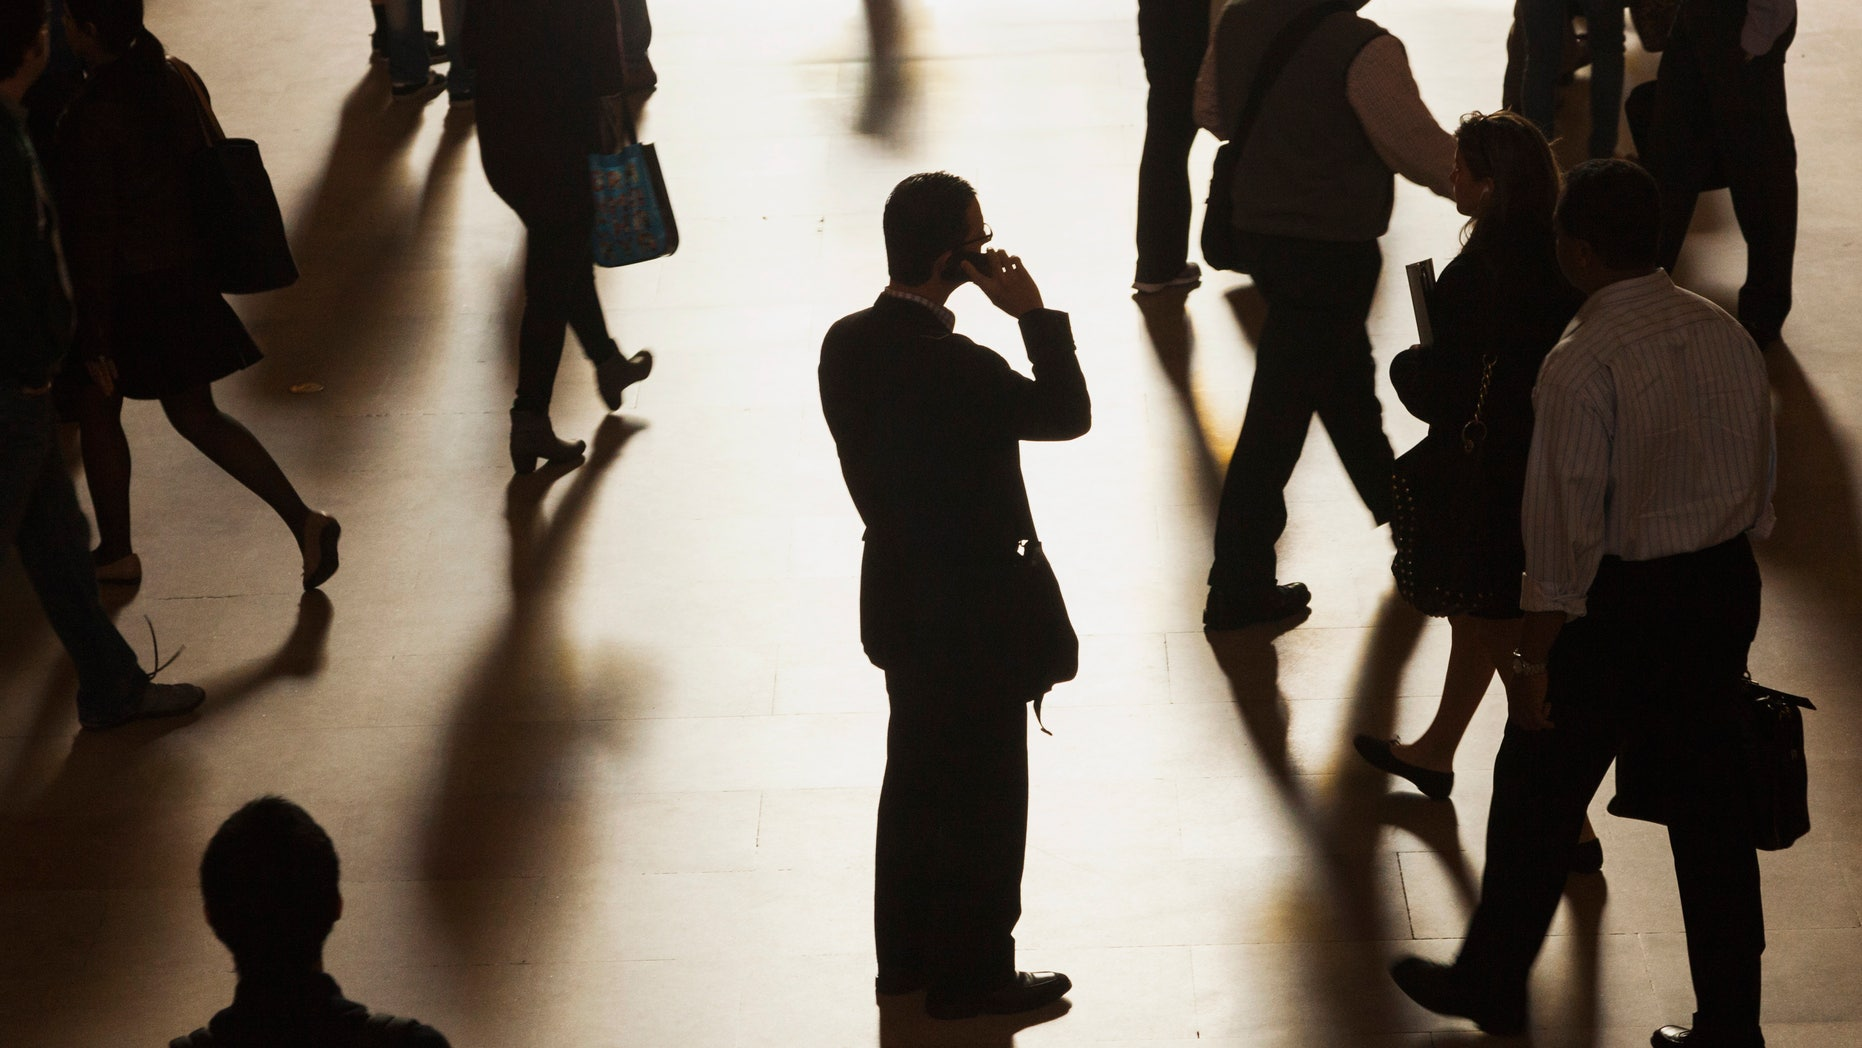 File photo: A man stands in the middle of Grand Central Terminal as he speaks on a cell phone in New York, September 25, 2013. (REUTERS/Zoran Milich)